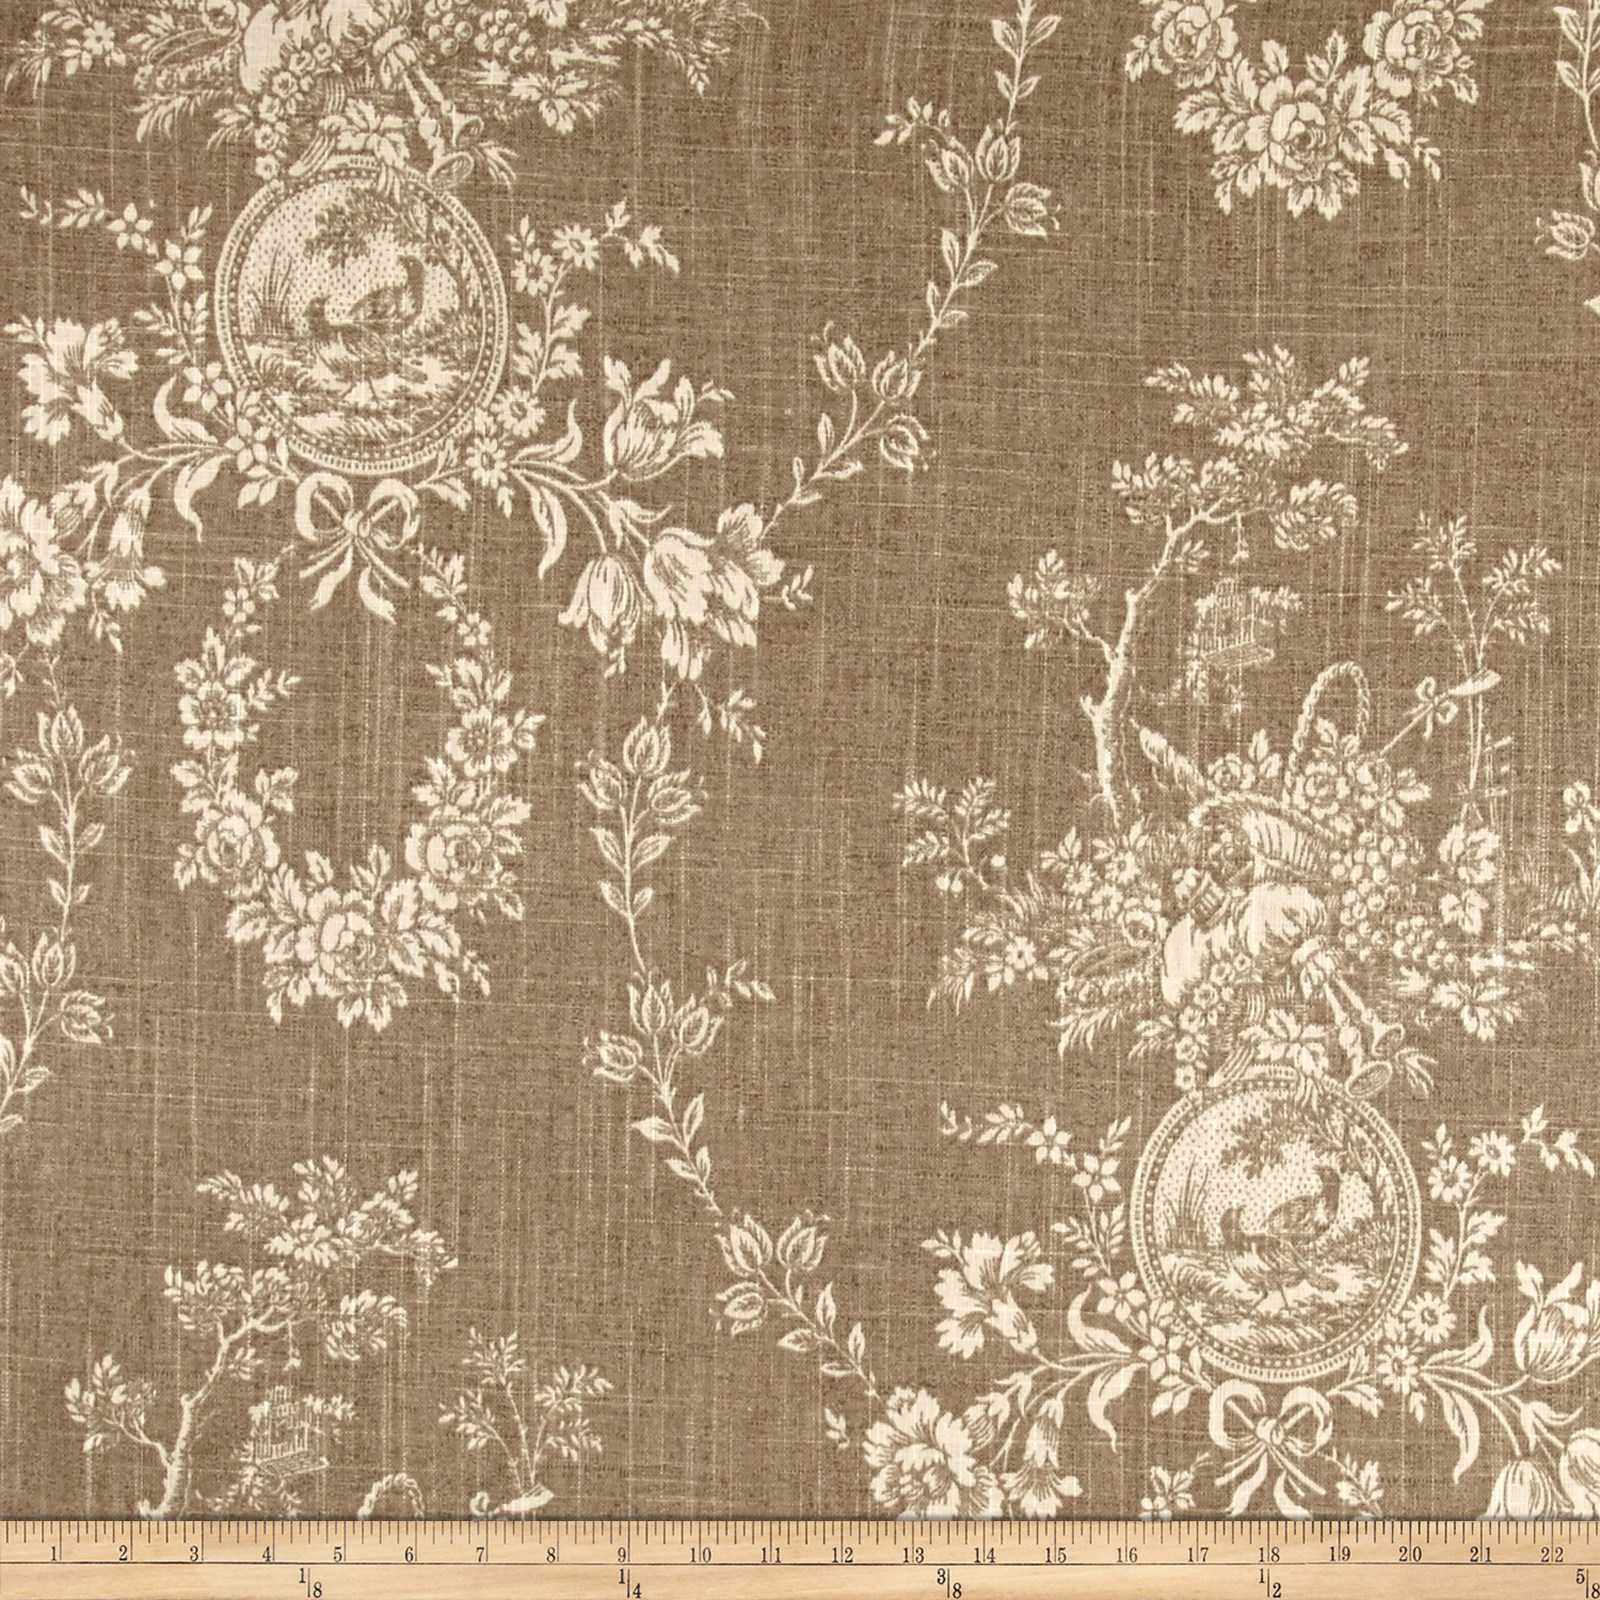 Waverly Country House Toile Linen Fabric by Waverly in USA